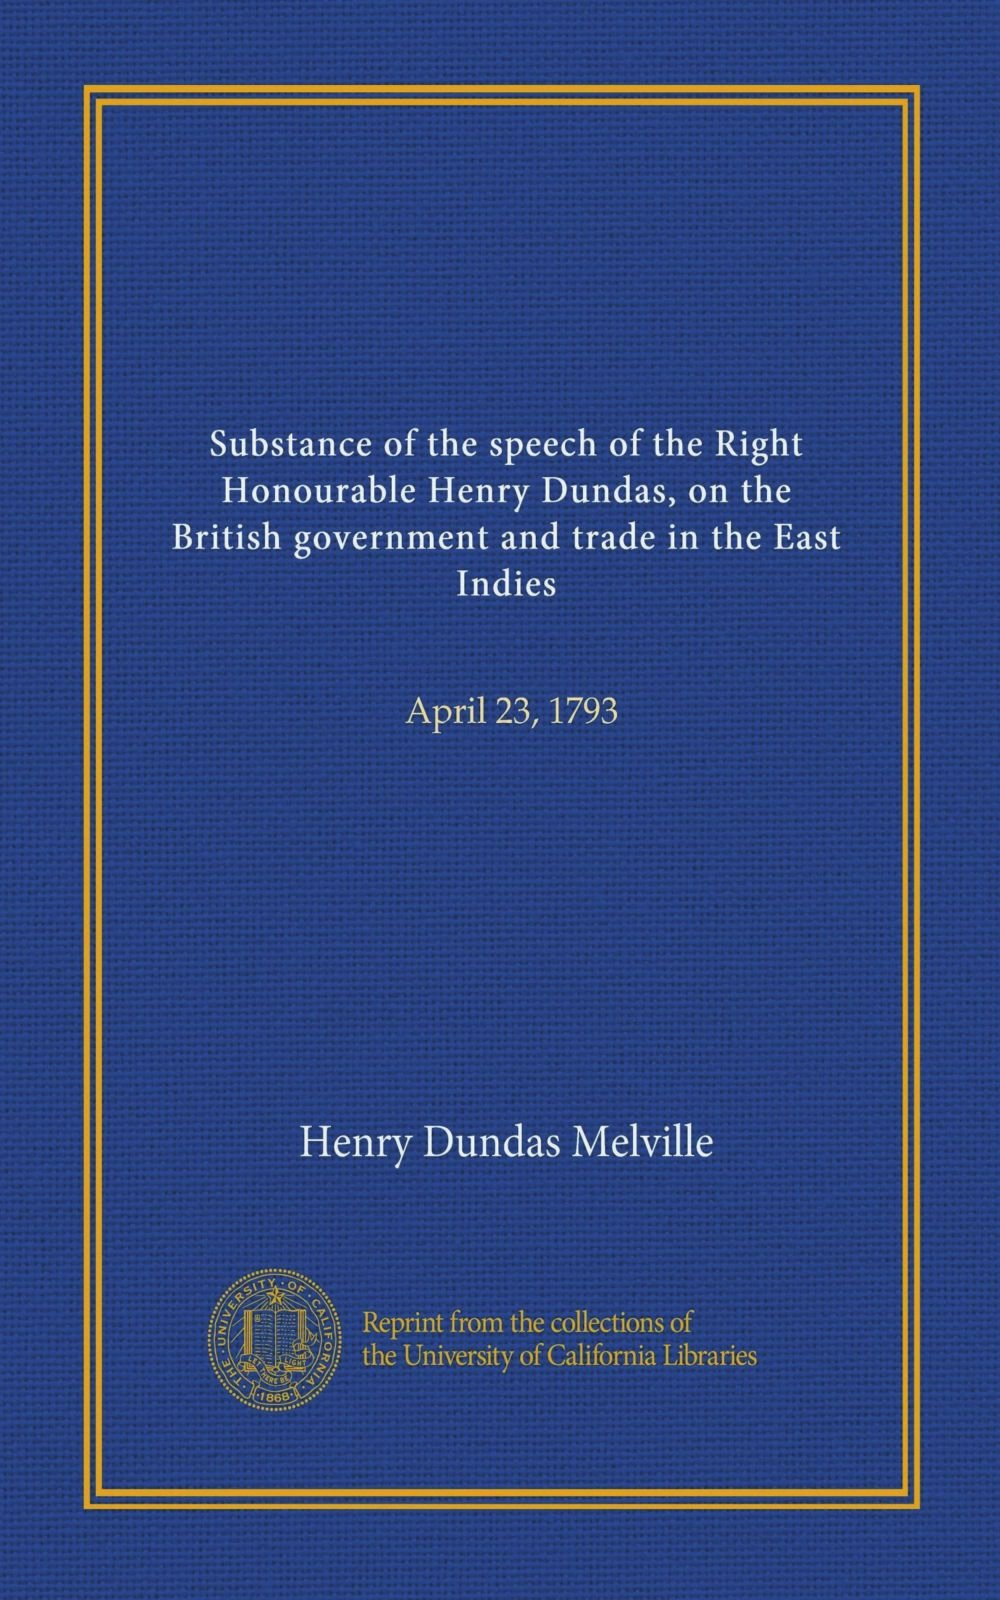 Download Substance of the speech of the Right Honourable Henry Dundas, on the British government and trade in the East Indies: April 23, 1793 pdf